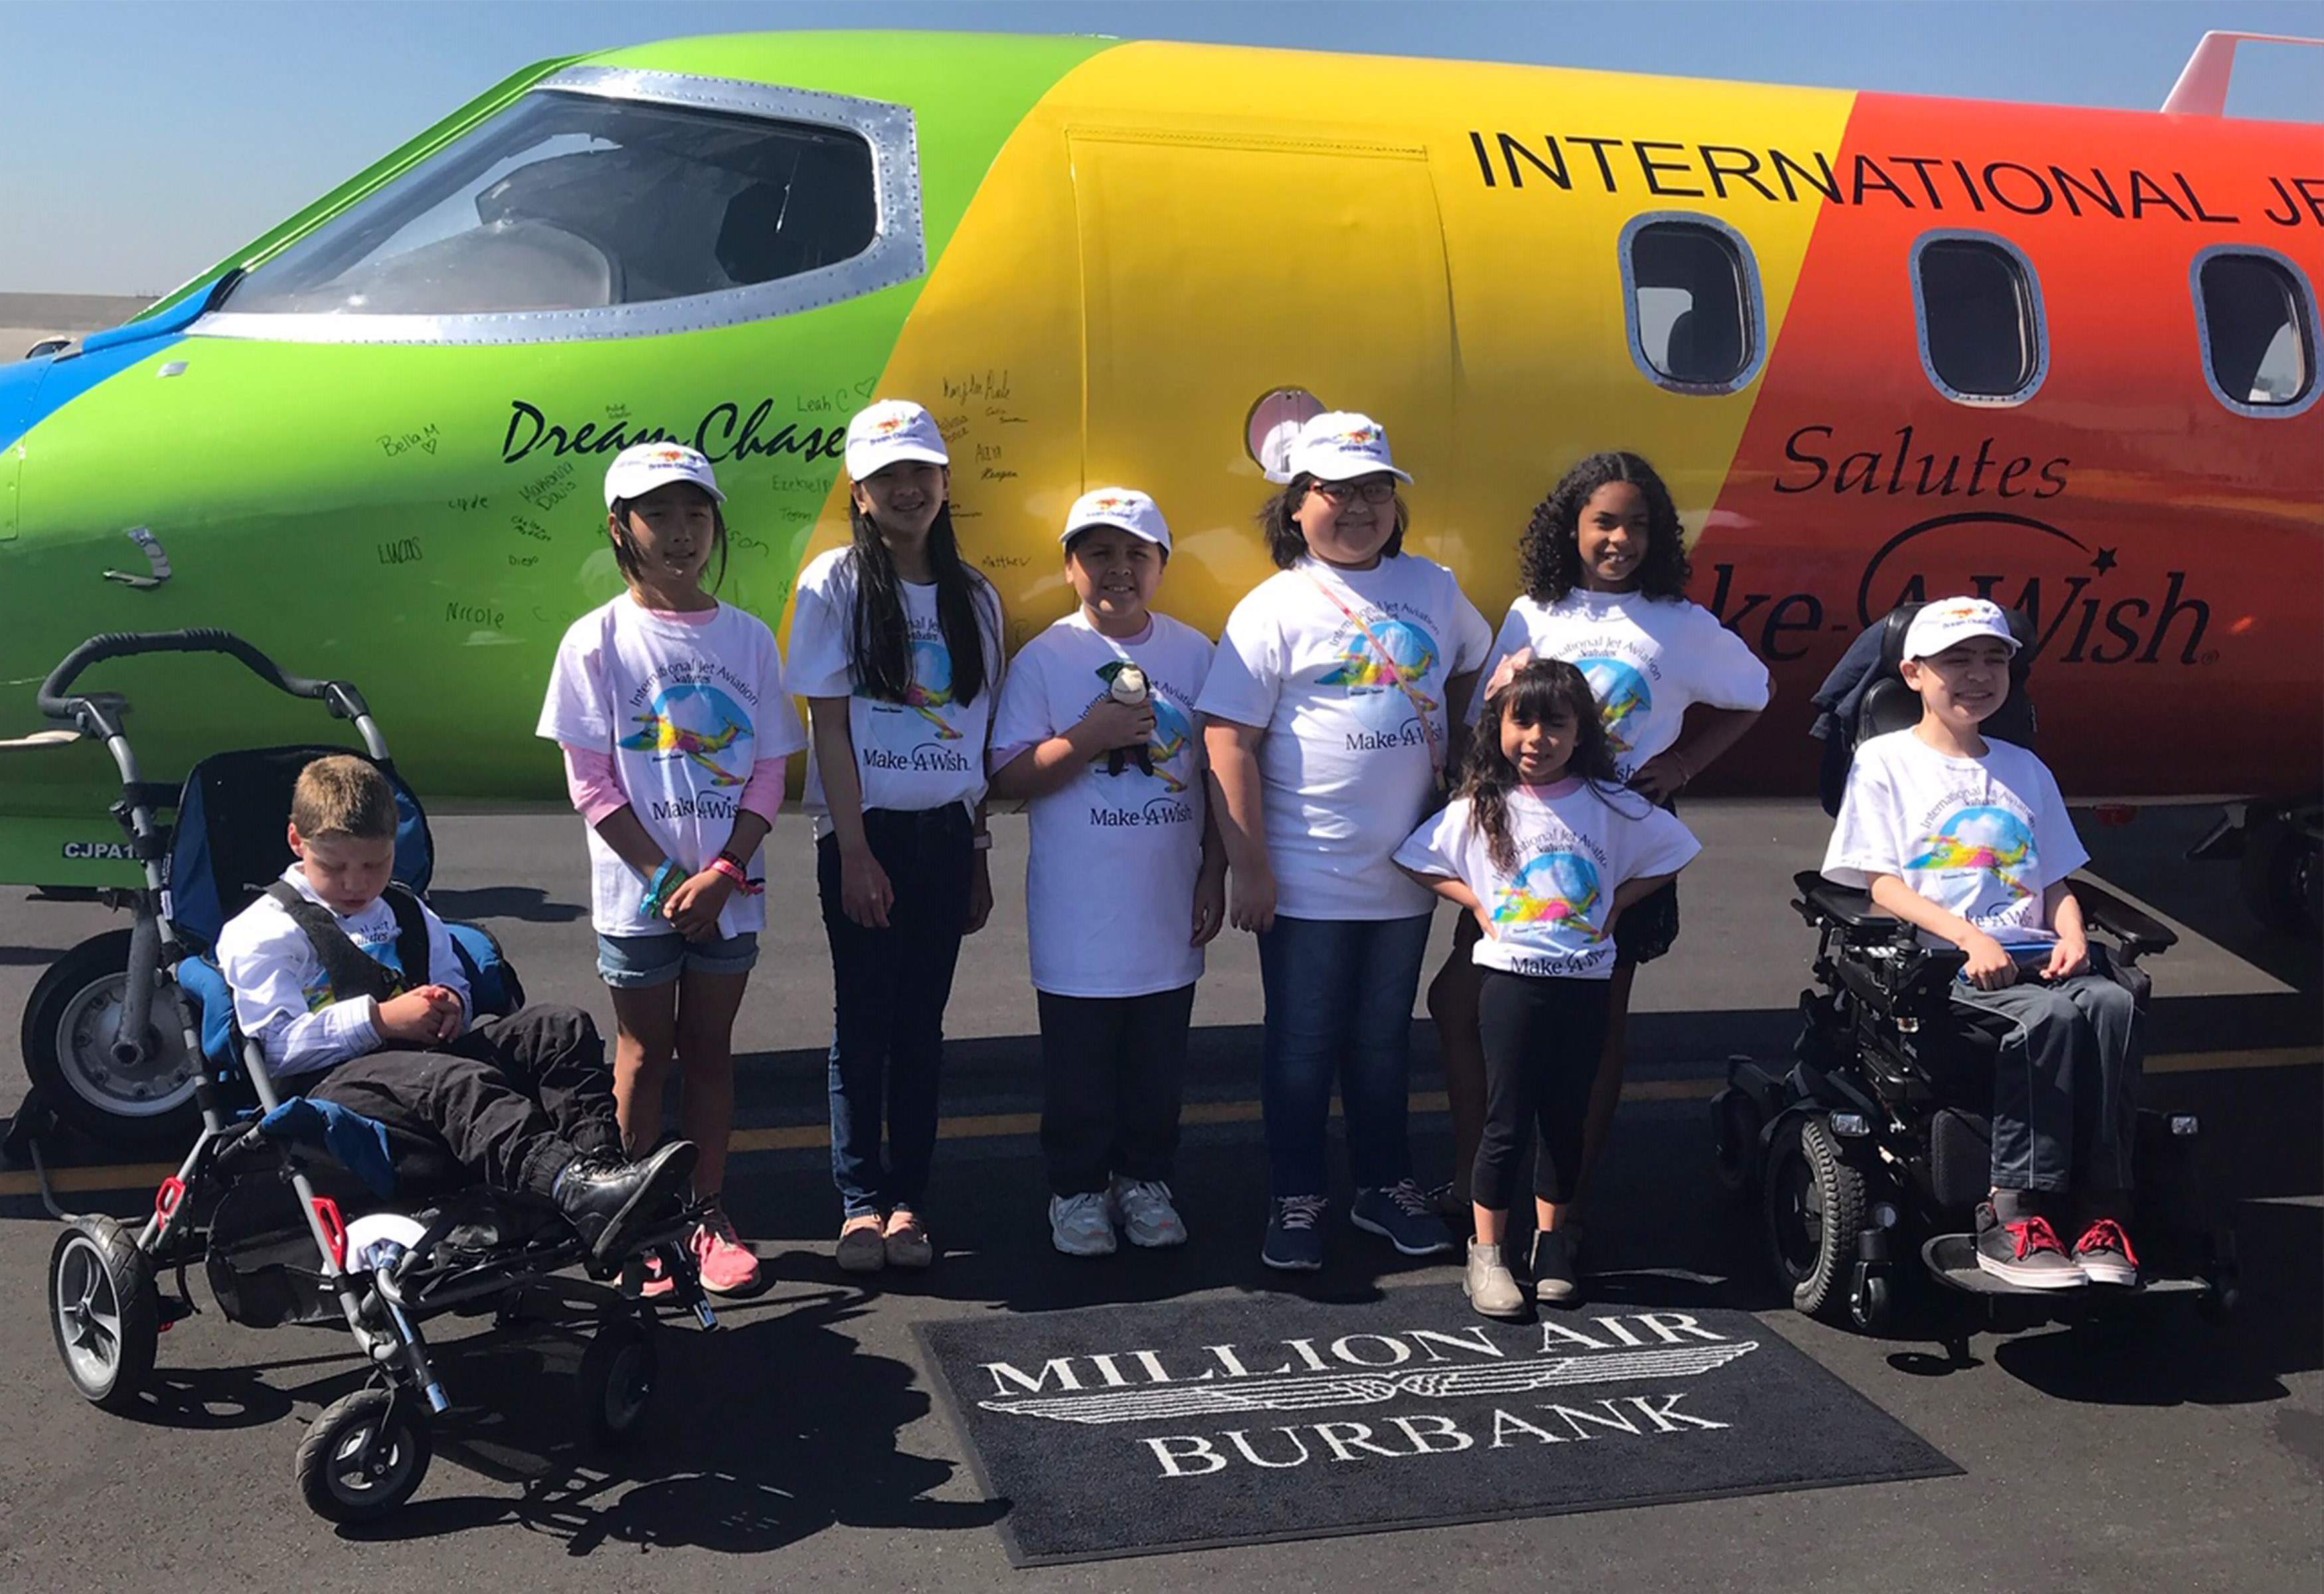 With some of their signatures on the fuselage behind them, Make-A-Wish recipients gather near a rainbow-colored 1982 Learjet 35A operated by International Jet Aviation. Photo courtesy of International Jet Aviation.